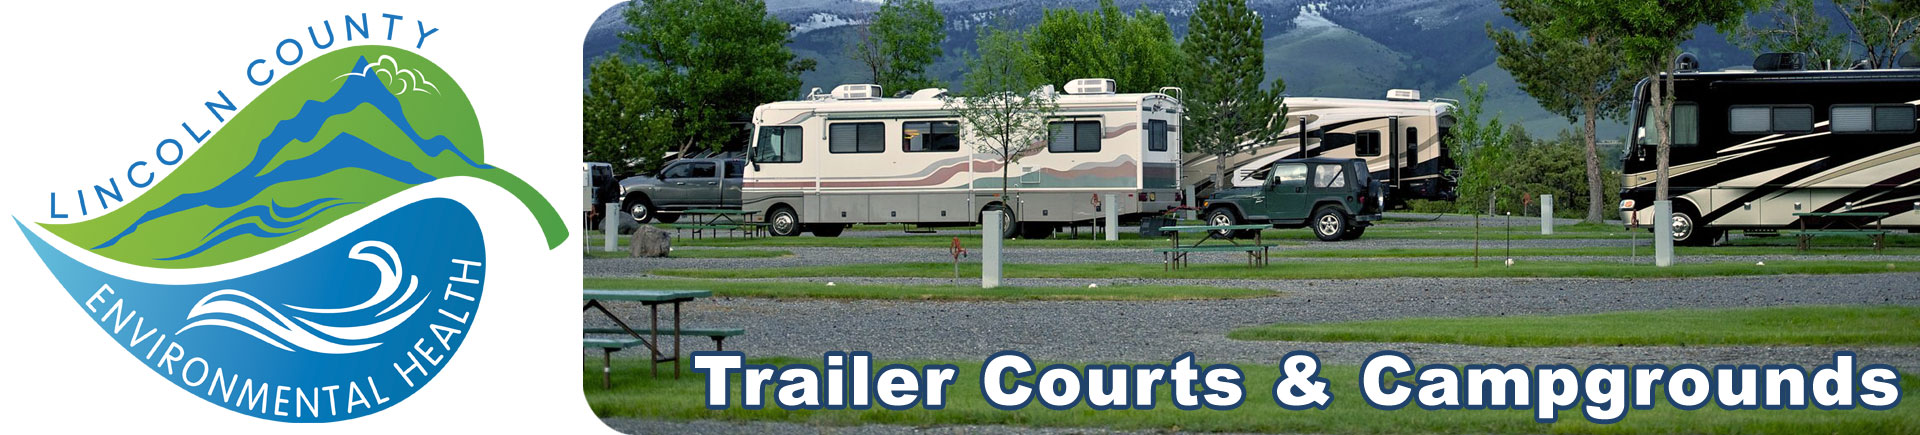 Lincoln County Montana Trailer Courts & Campgrounds